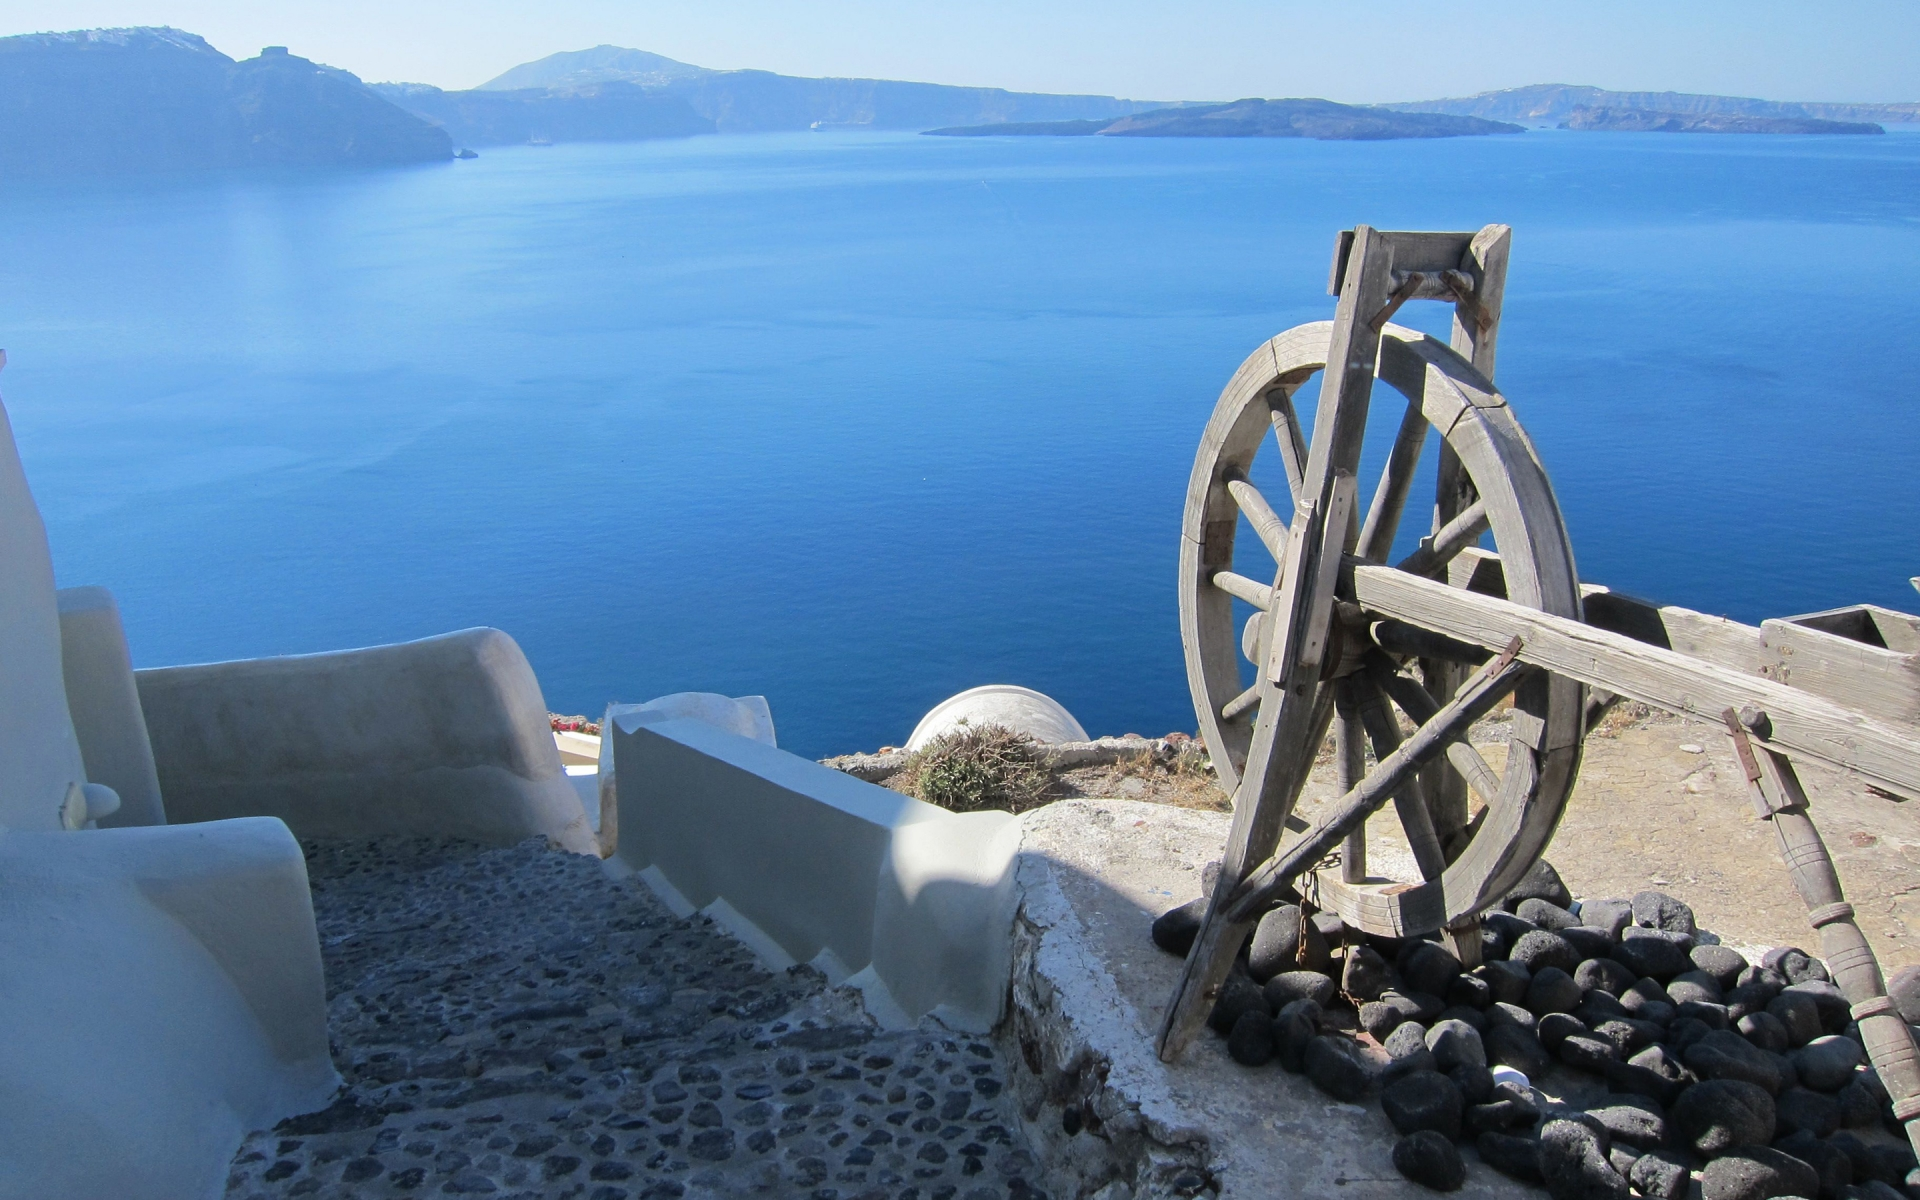 AD-Stunning-Photos-Of-Santorini-Greece-45